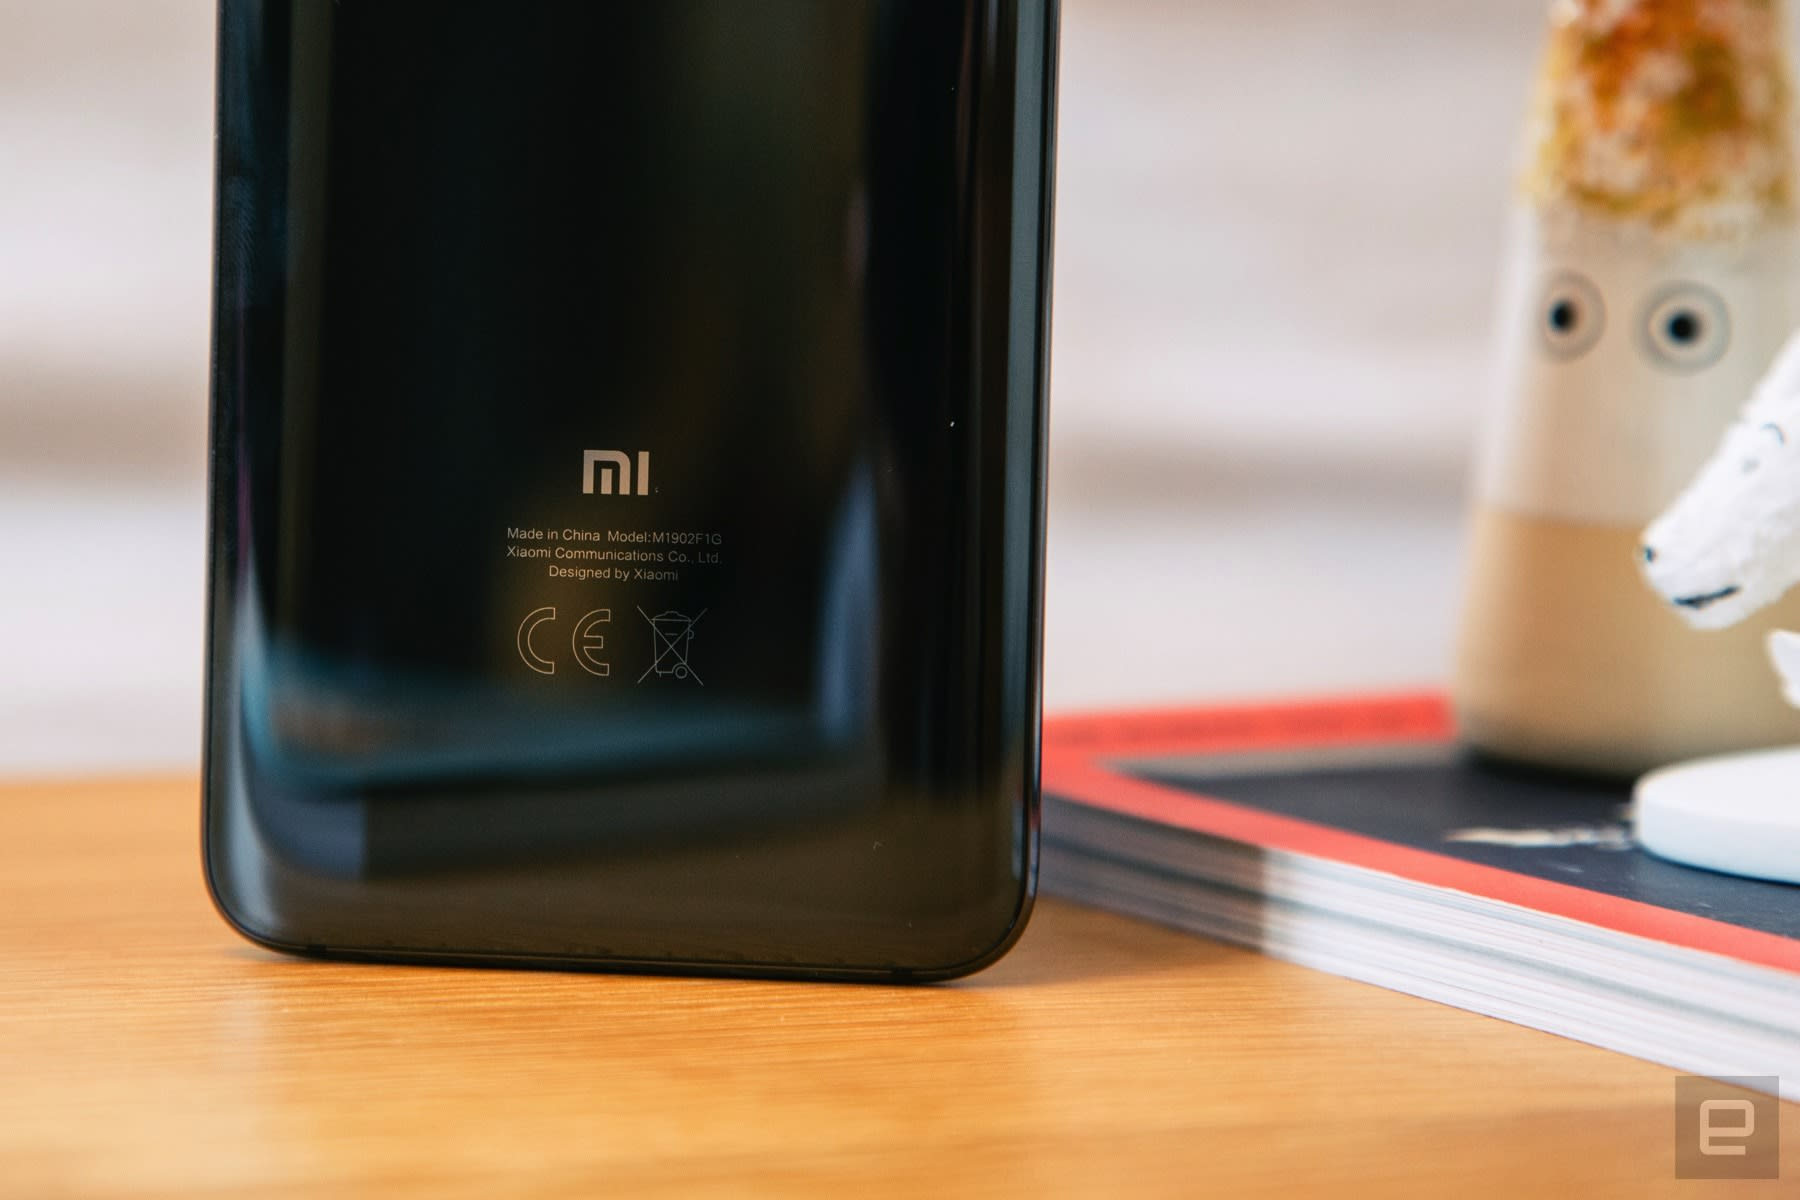 Xiaomi's new Mi CC phones are aimed at young people